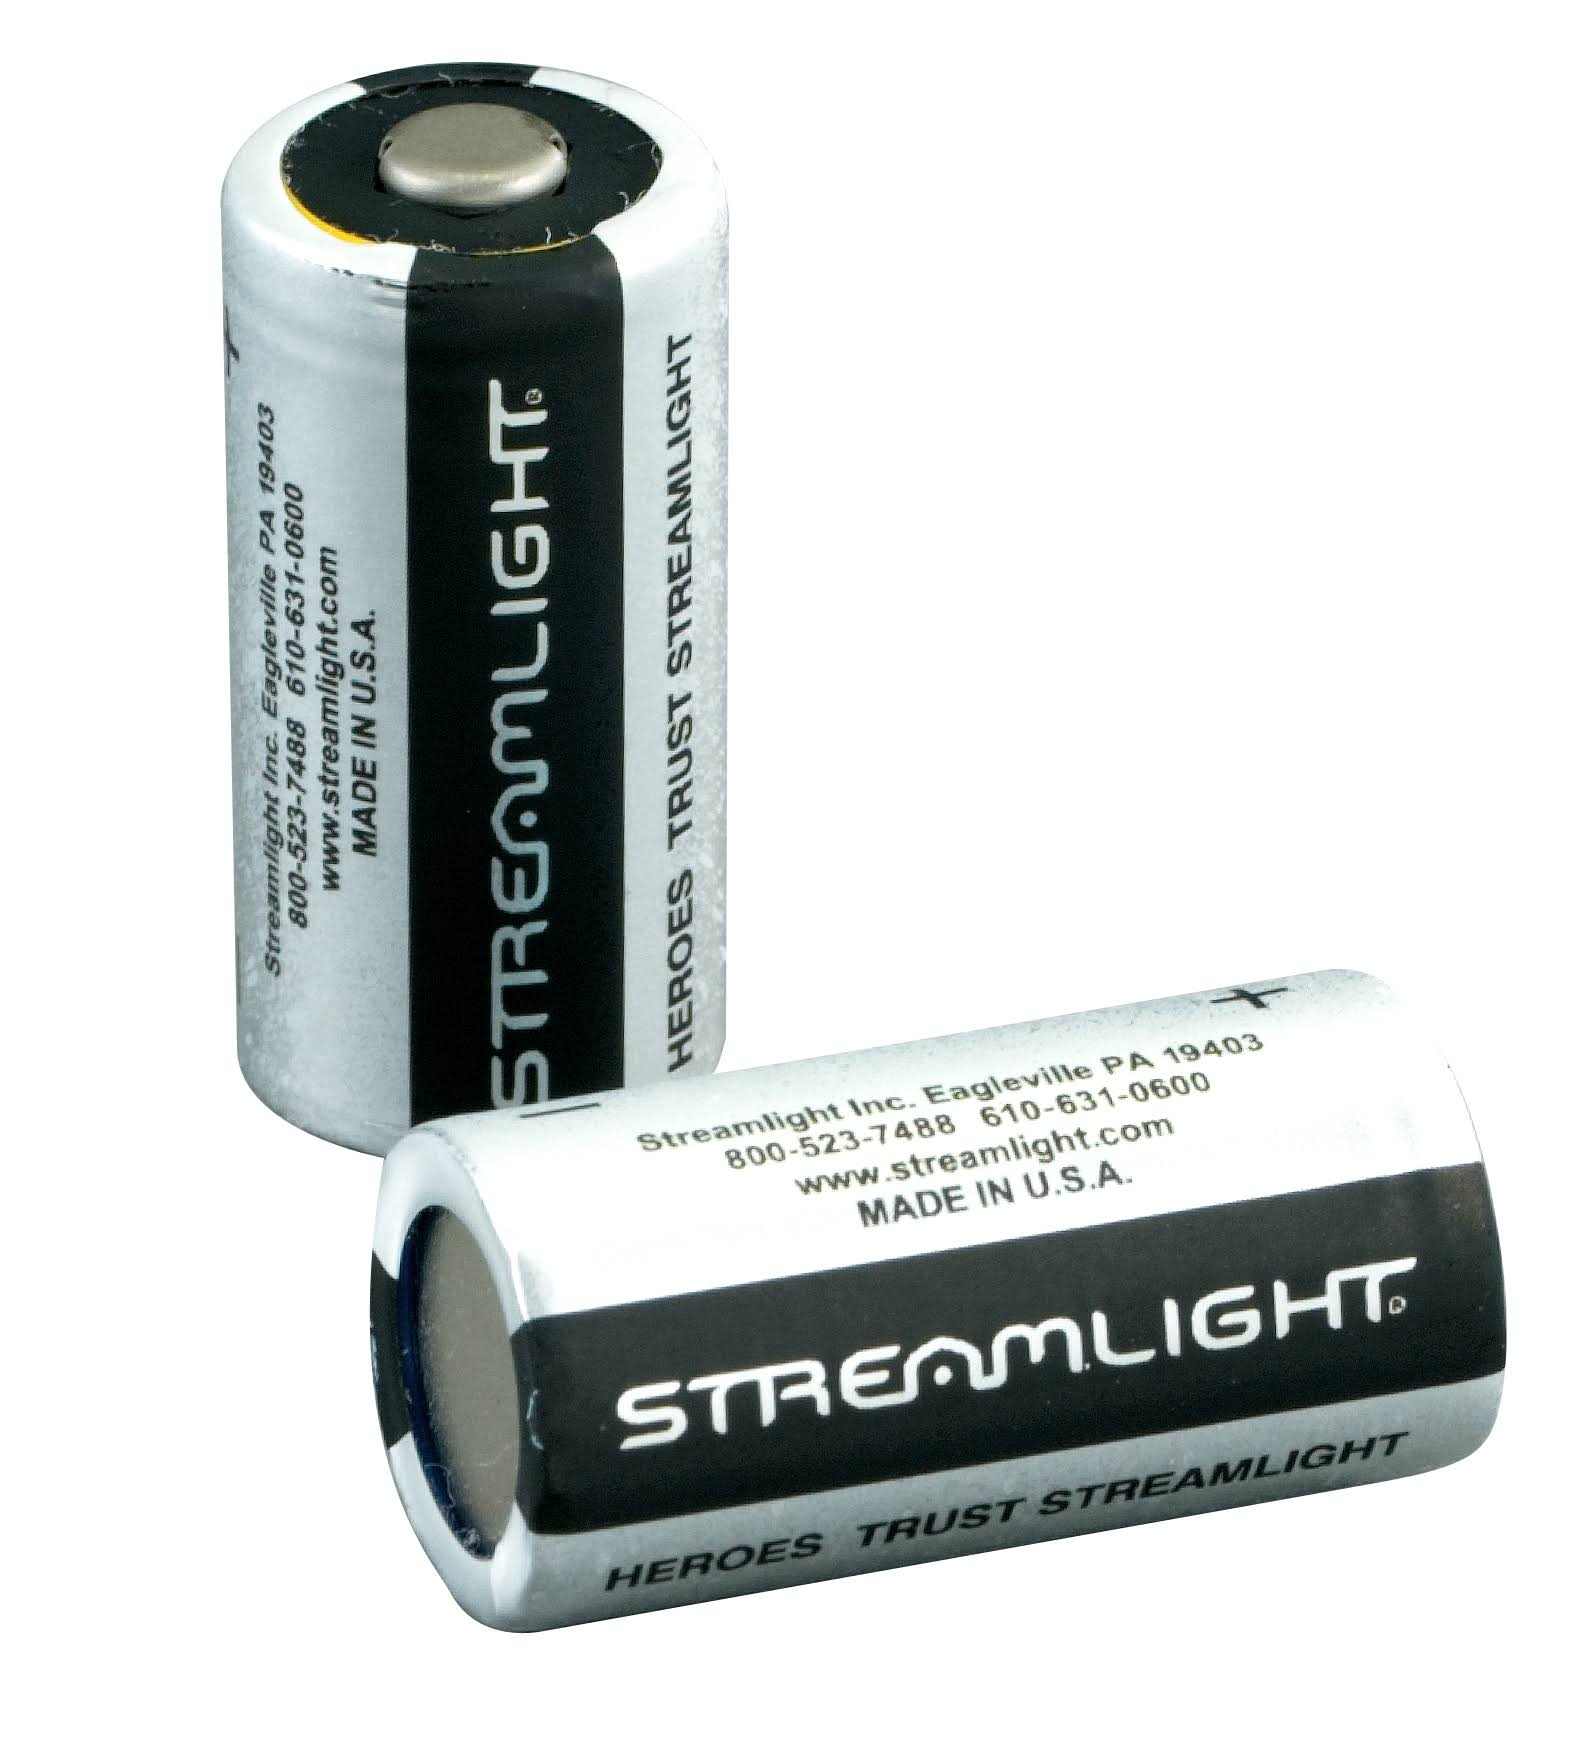 Streamlight Lithium Battery - 2pk, 3V